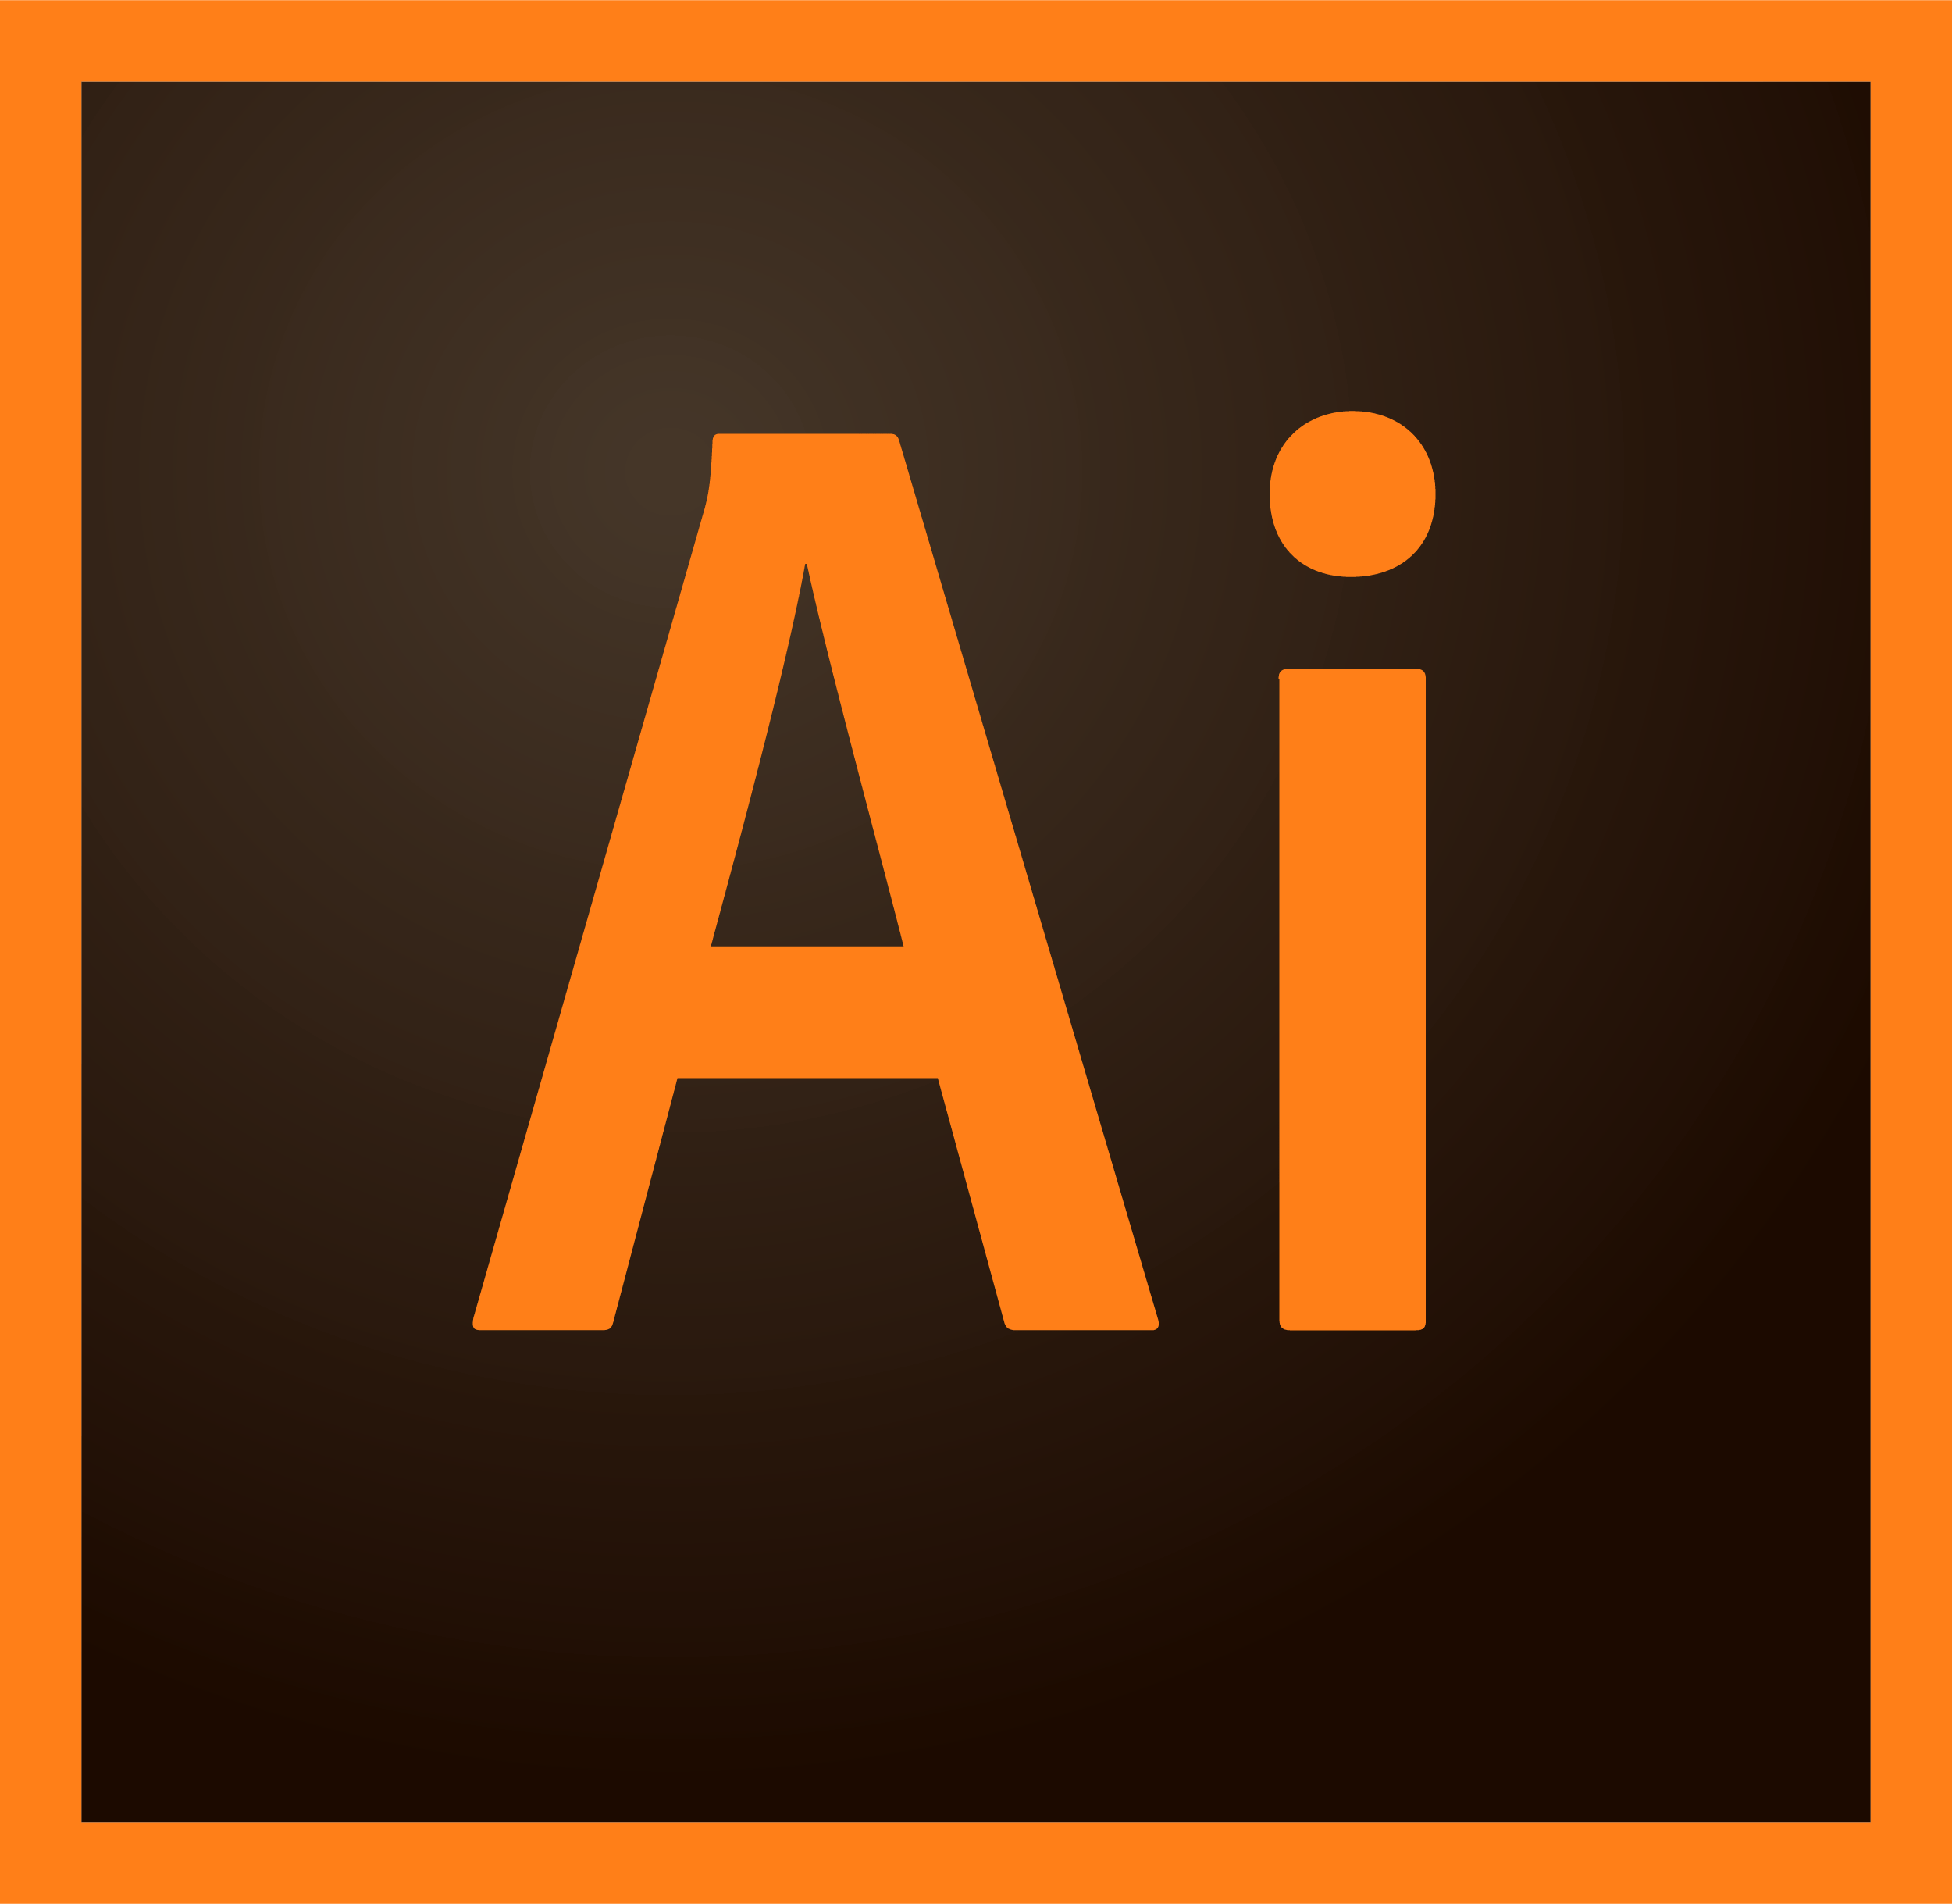 Download Gratis Adobe Illustrator CC Full Version